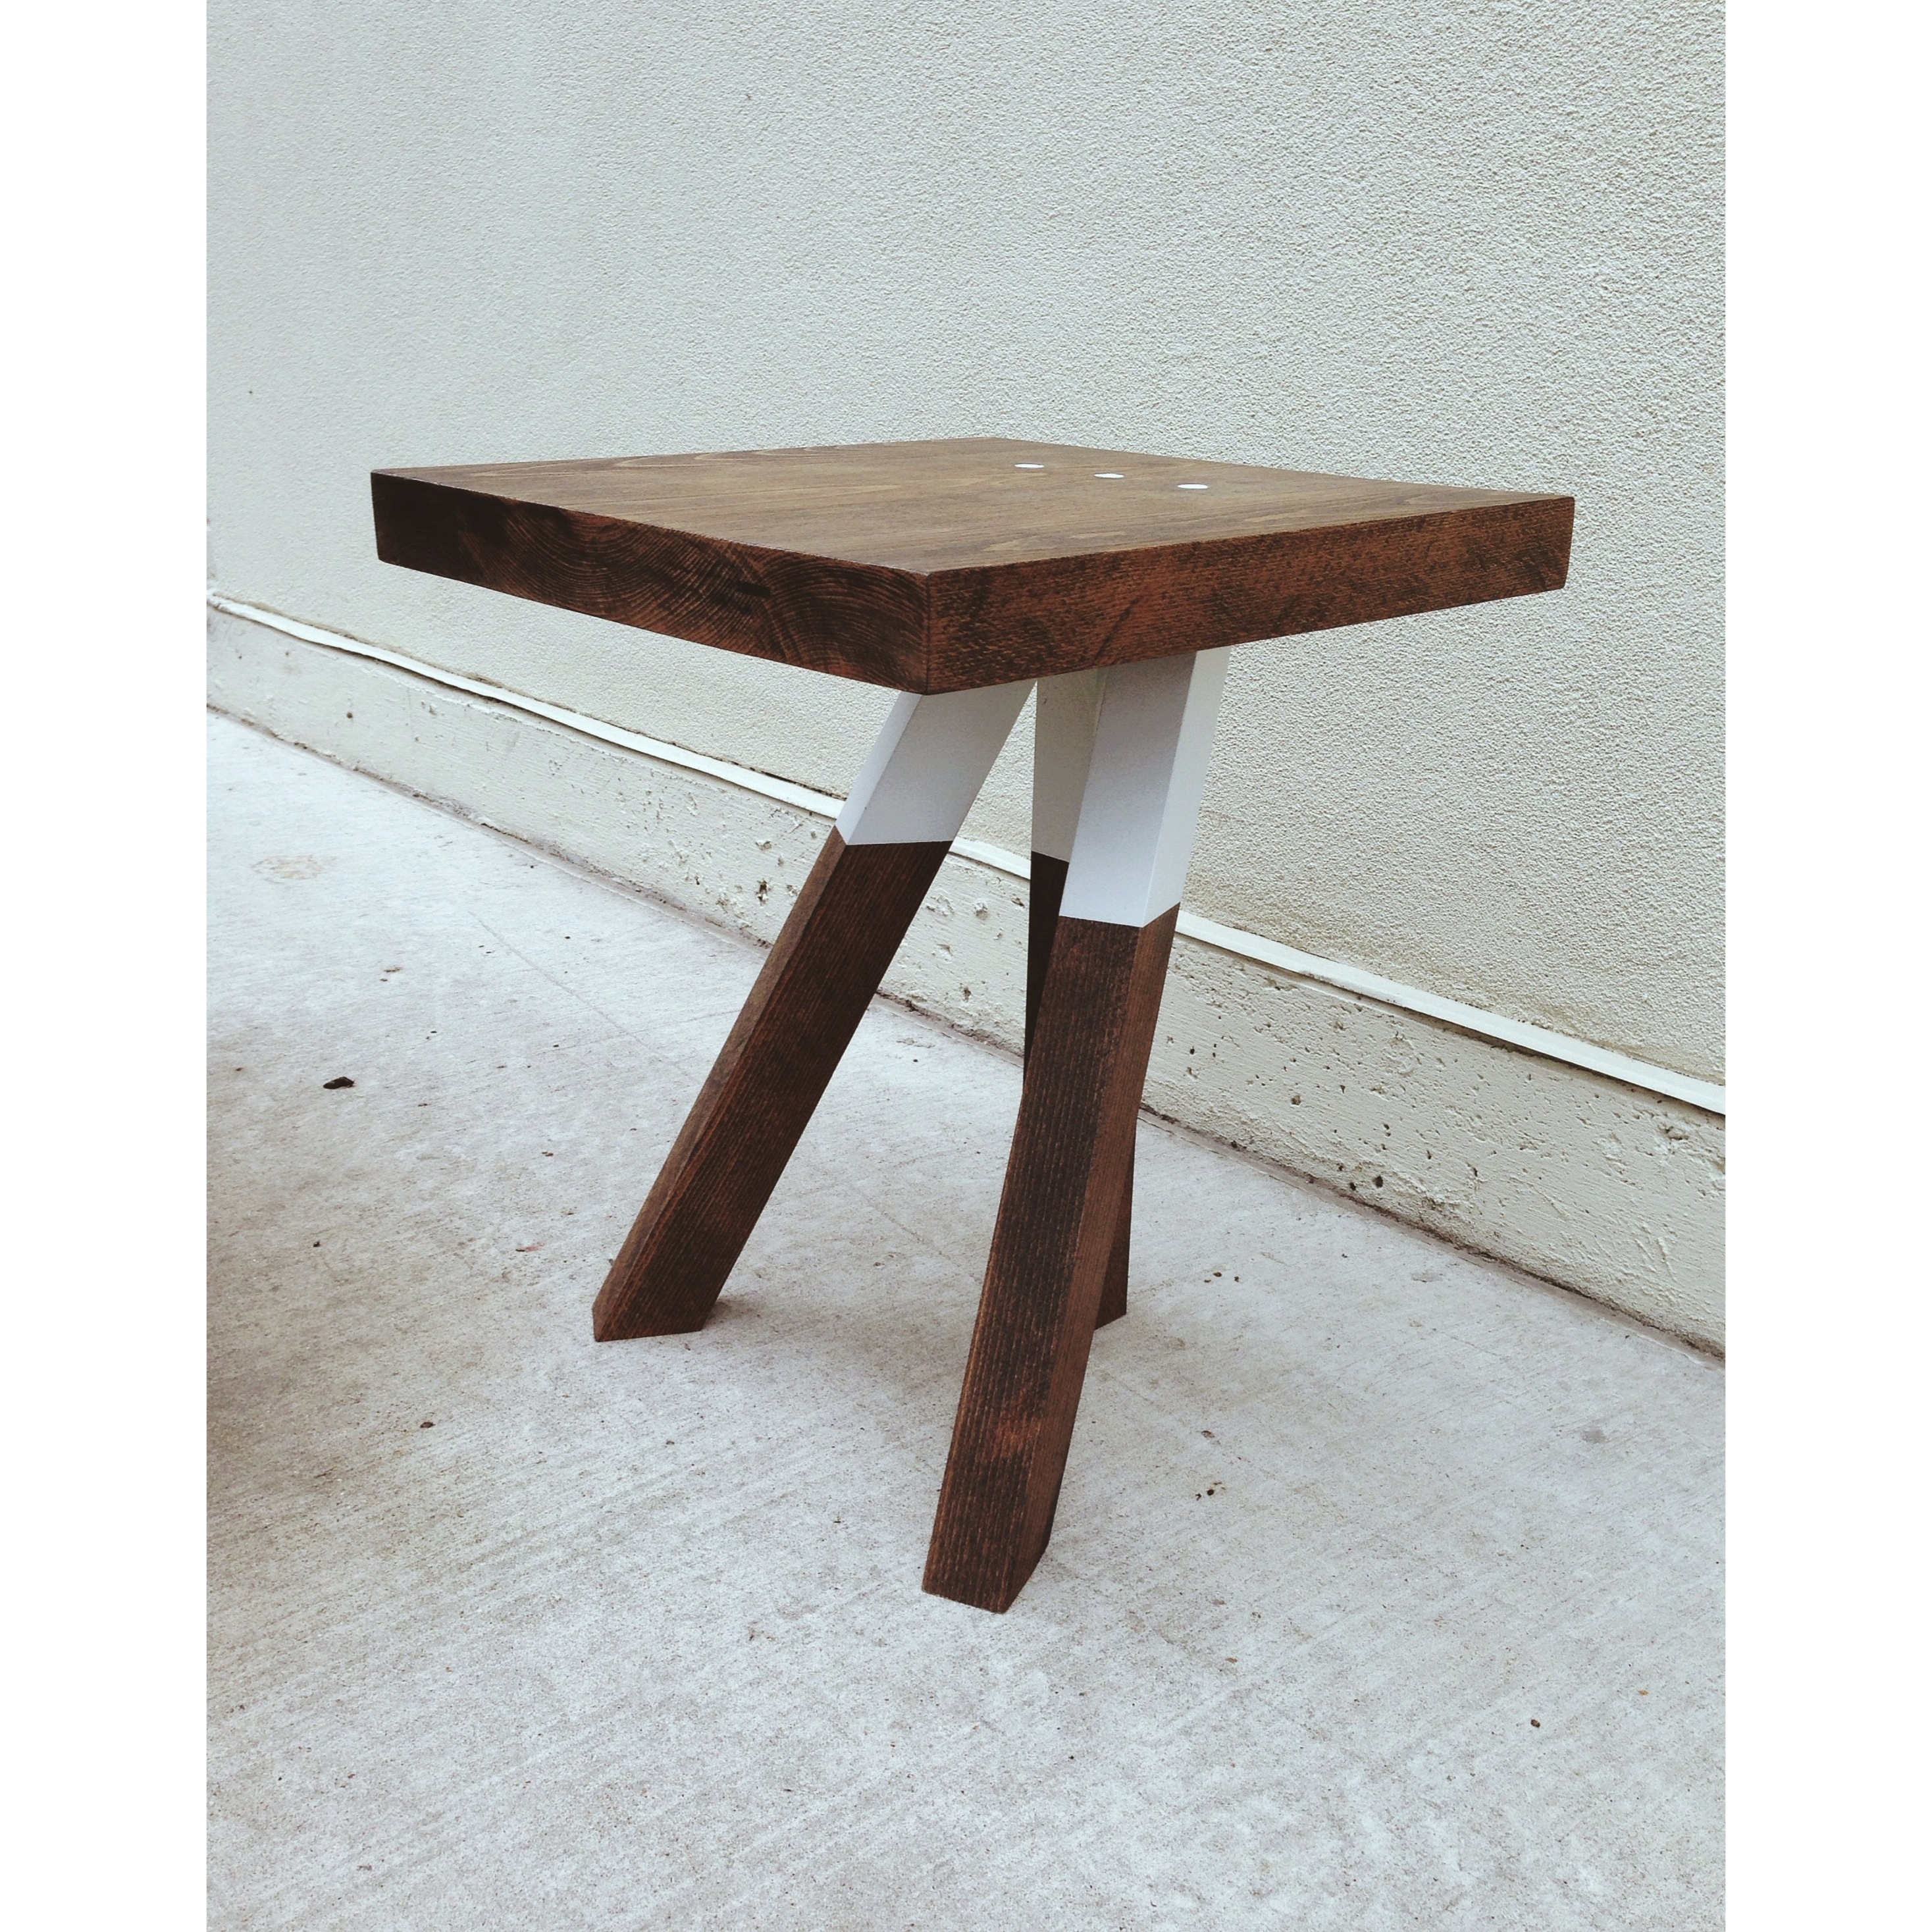 unique tall end table with three legs